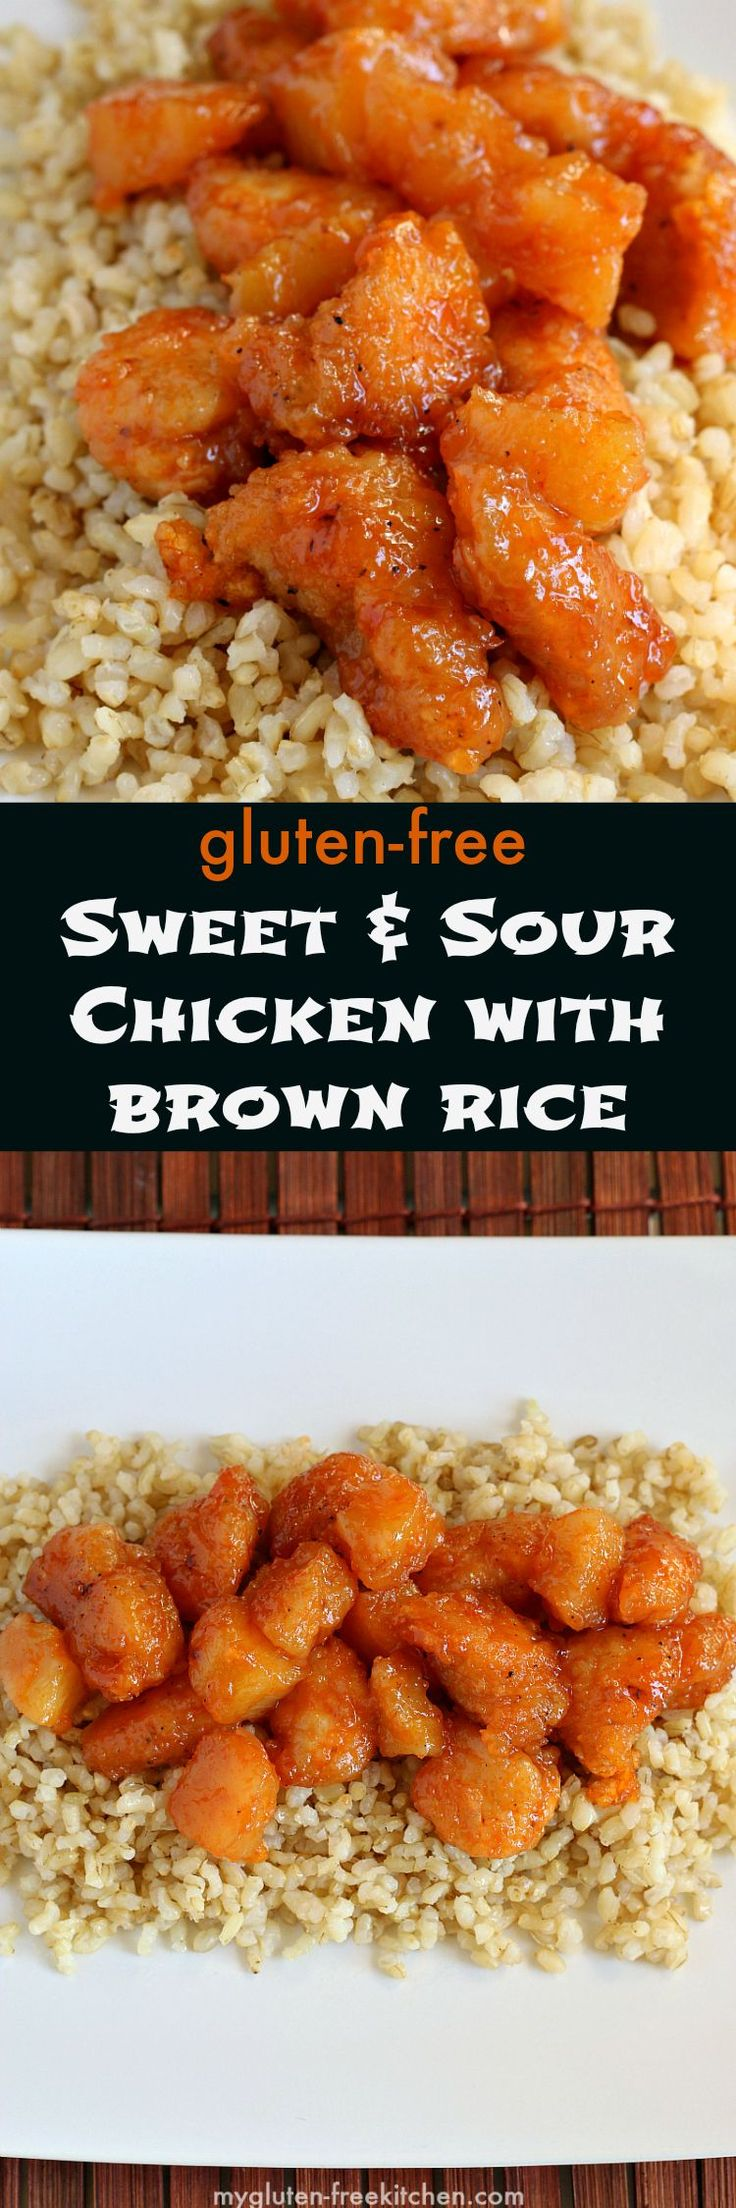 Sweet and Sour Chicken (Gluten-free)